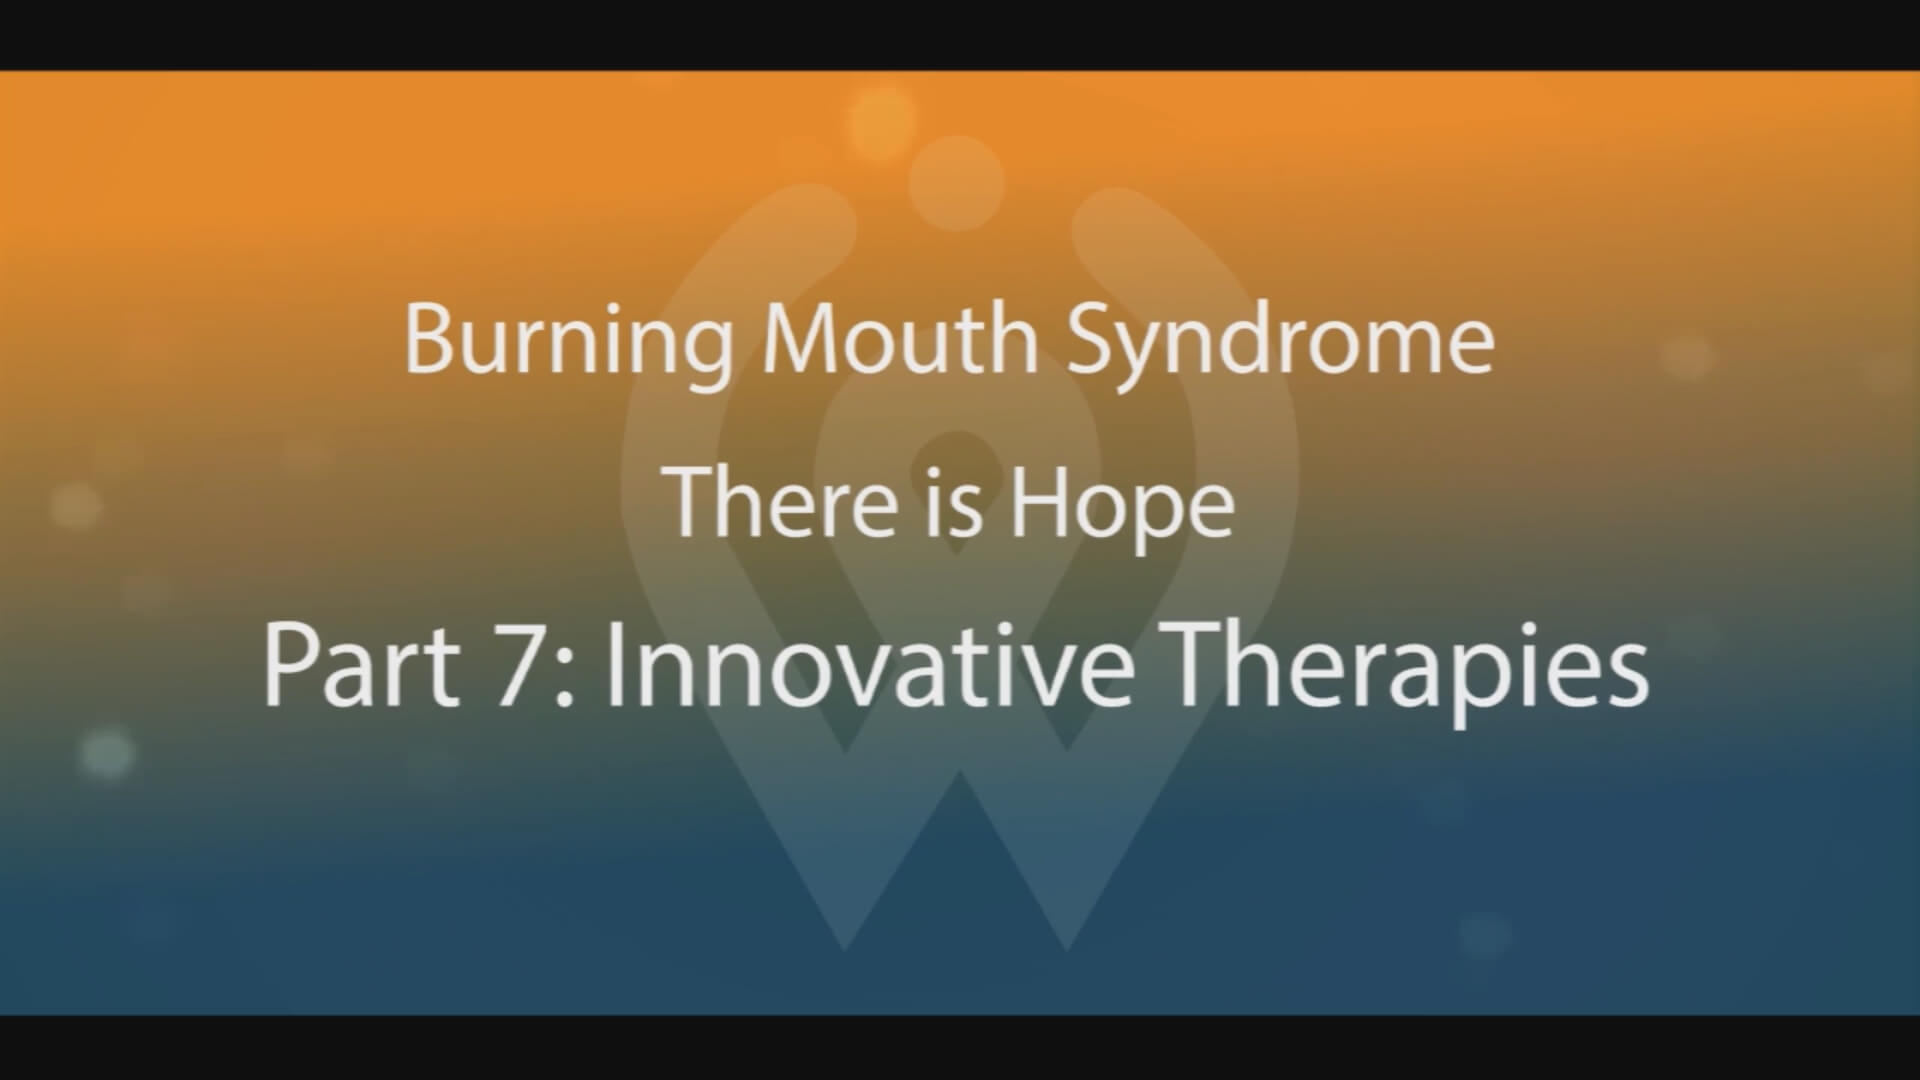 Video Part 7 - Innovative Therapies